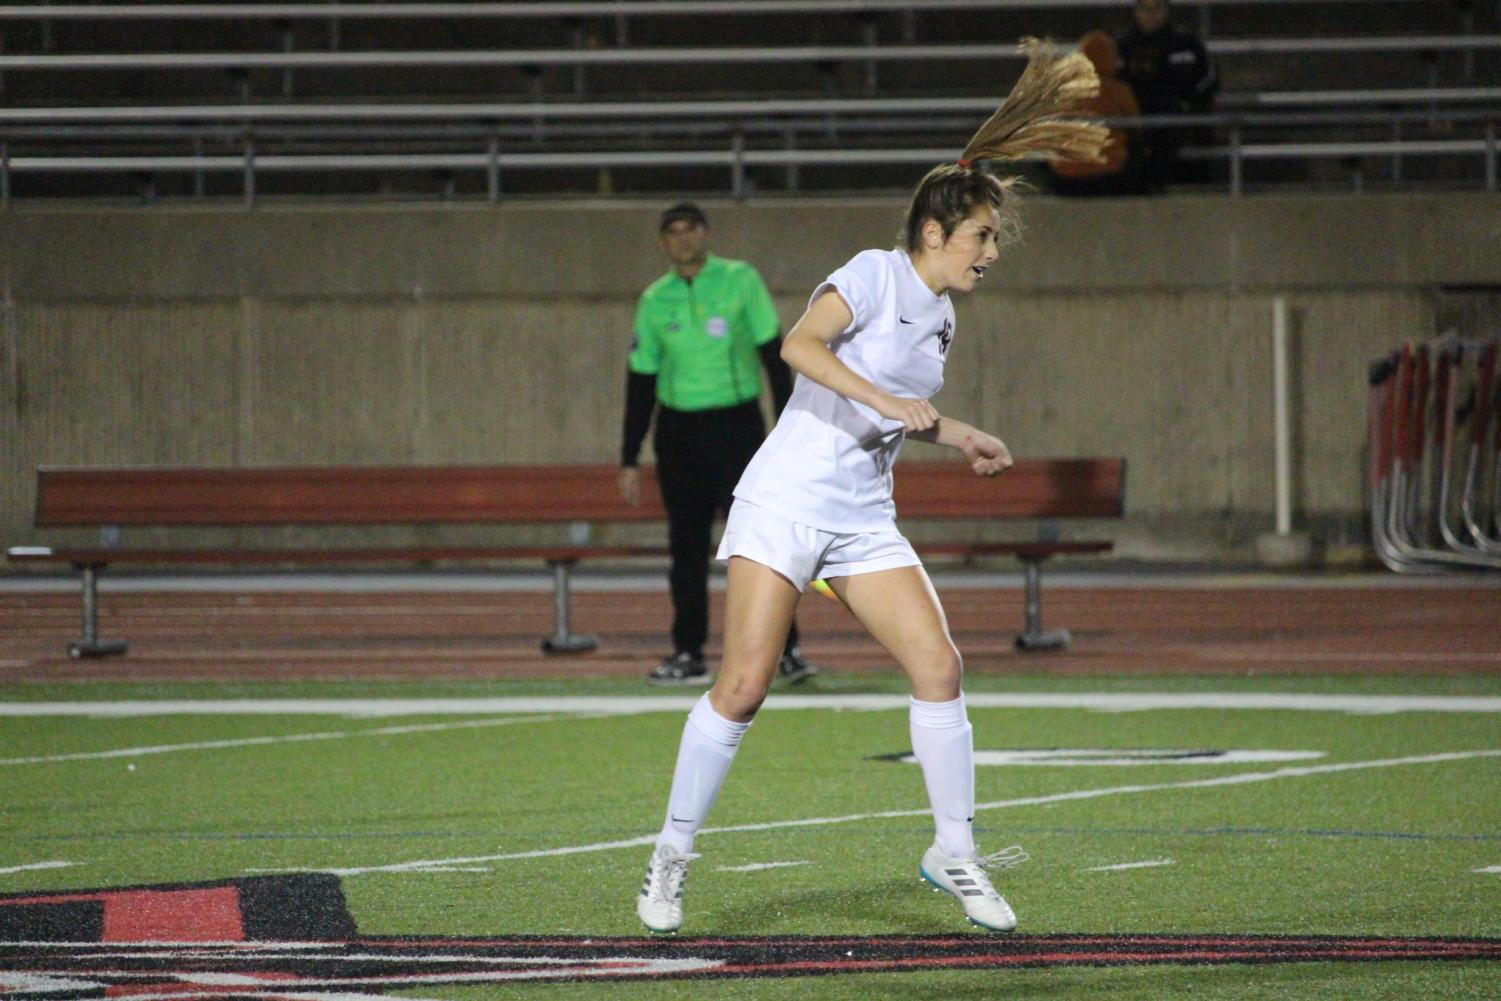 Coppell+High+School+sophomore+Montserrat+Lomeli+passes+the+ball+with+a+headbutt+during+the+first+half+of+Tuesday+nights+home+game+at+Buddy+Echols+Field.+The+varsity+girls+soccer+team+played+against+WT+White+taking+the+win+with+a+score+of+5-1.